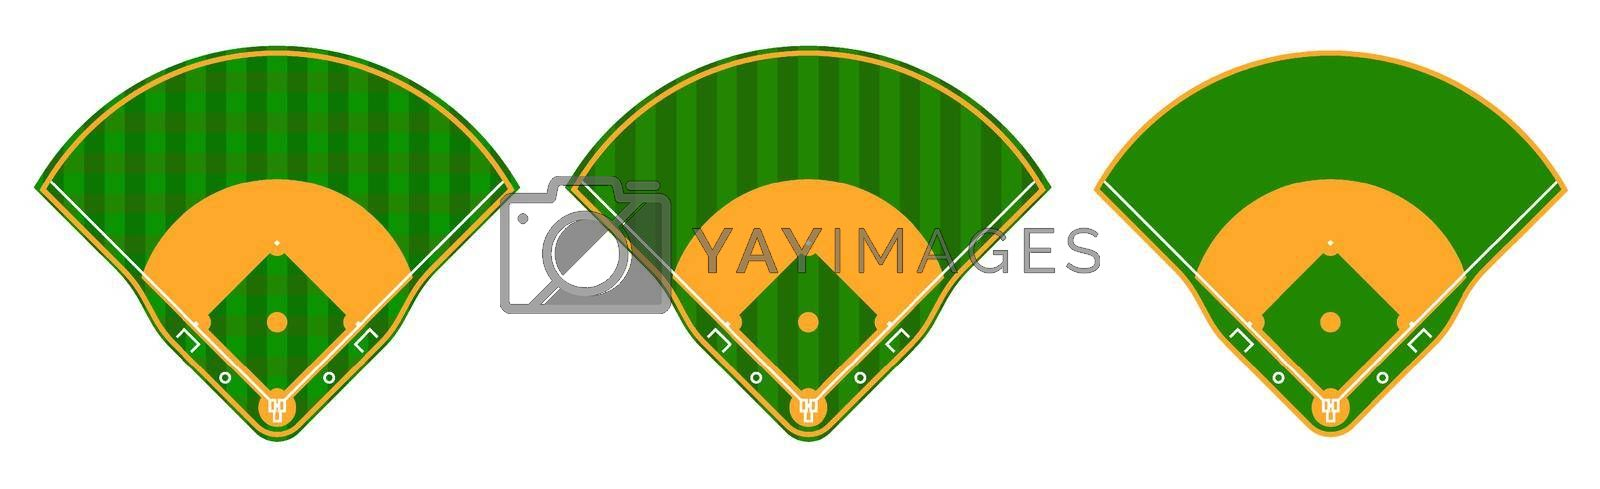 set of green baseball fields with marking lines. Team sports. Active lifestyle. American national sport. Vector